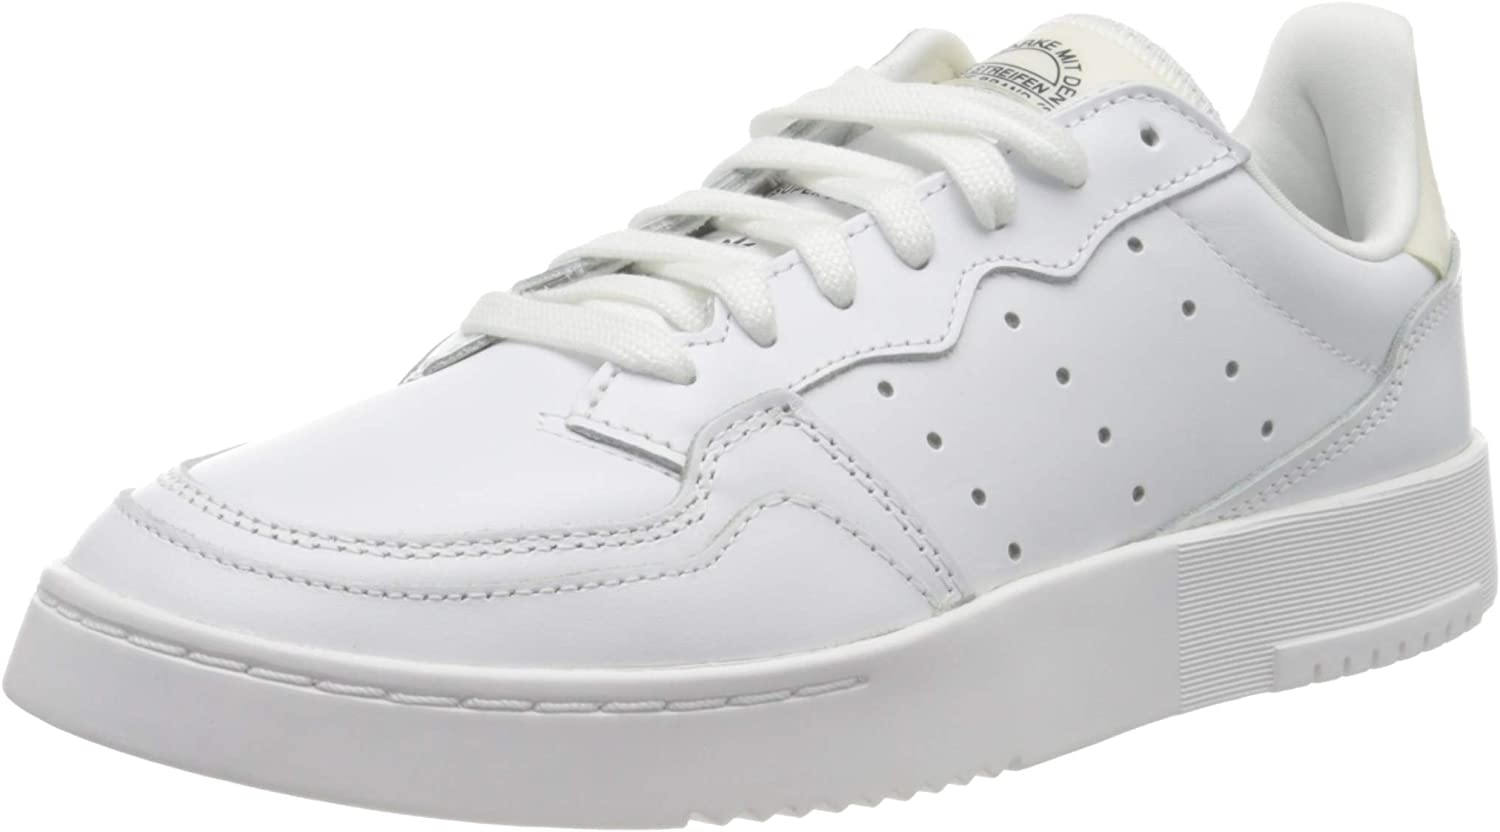 adidas Originals Supercourt W Trainers Women White Low Top Trainers